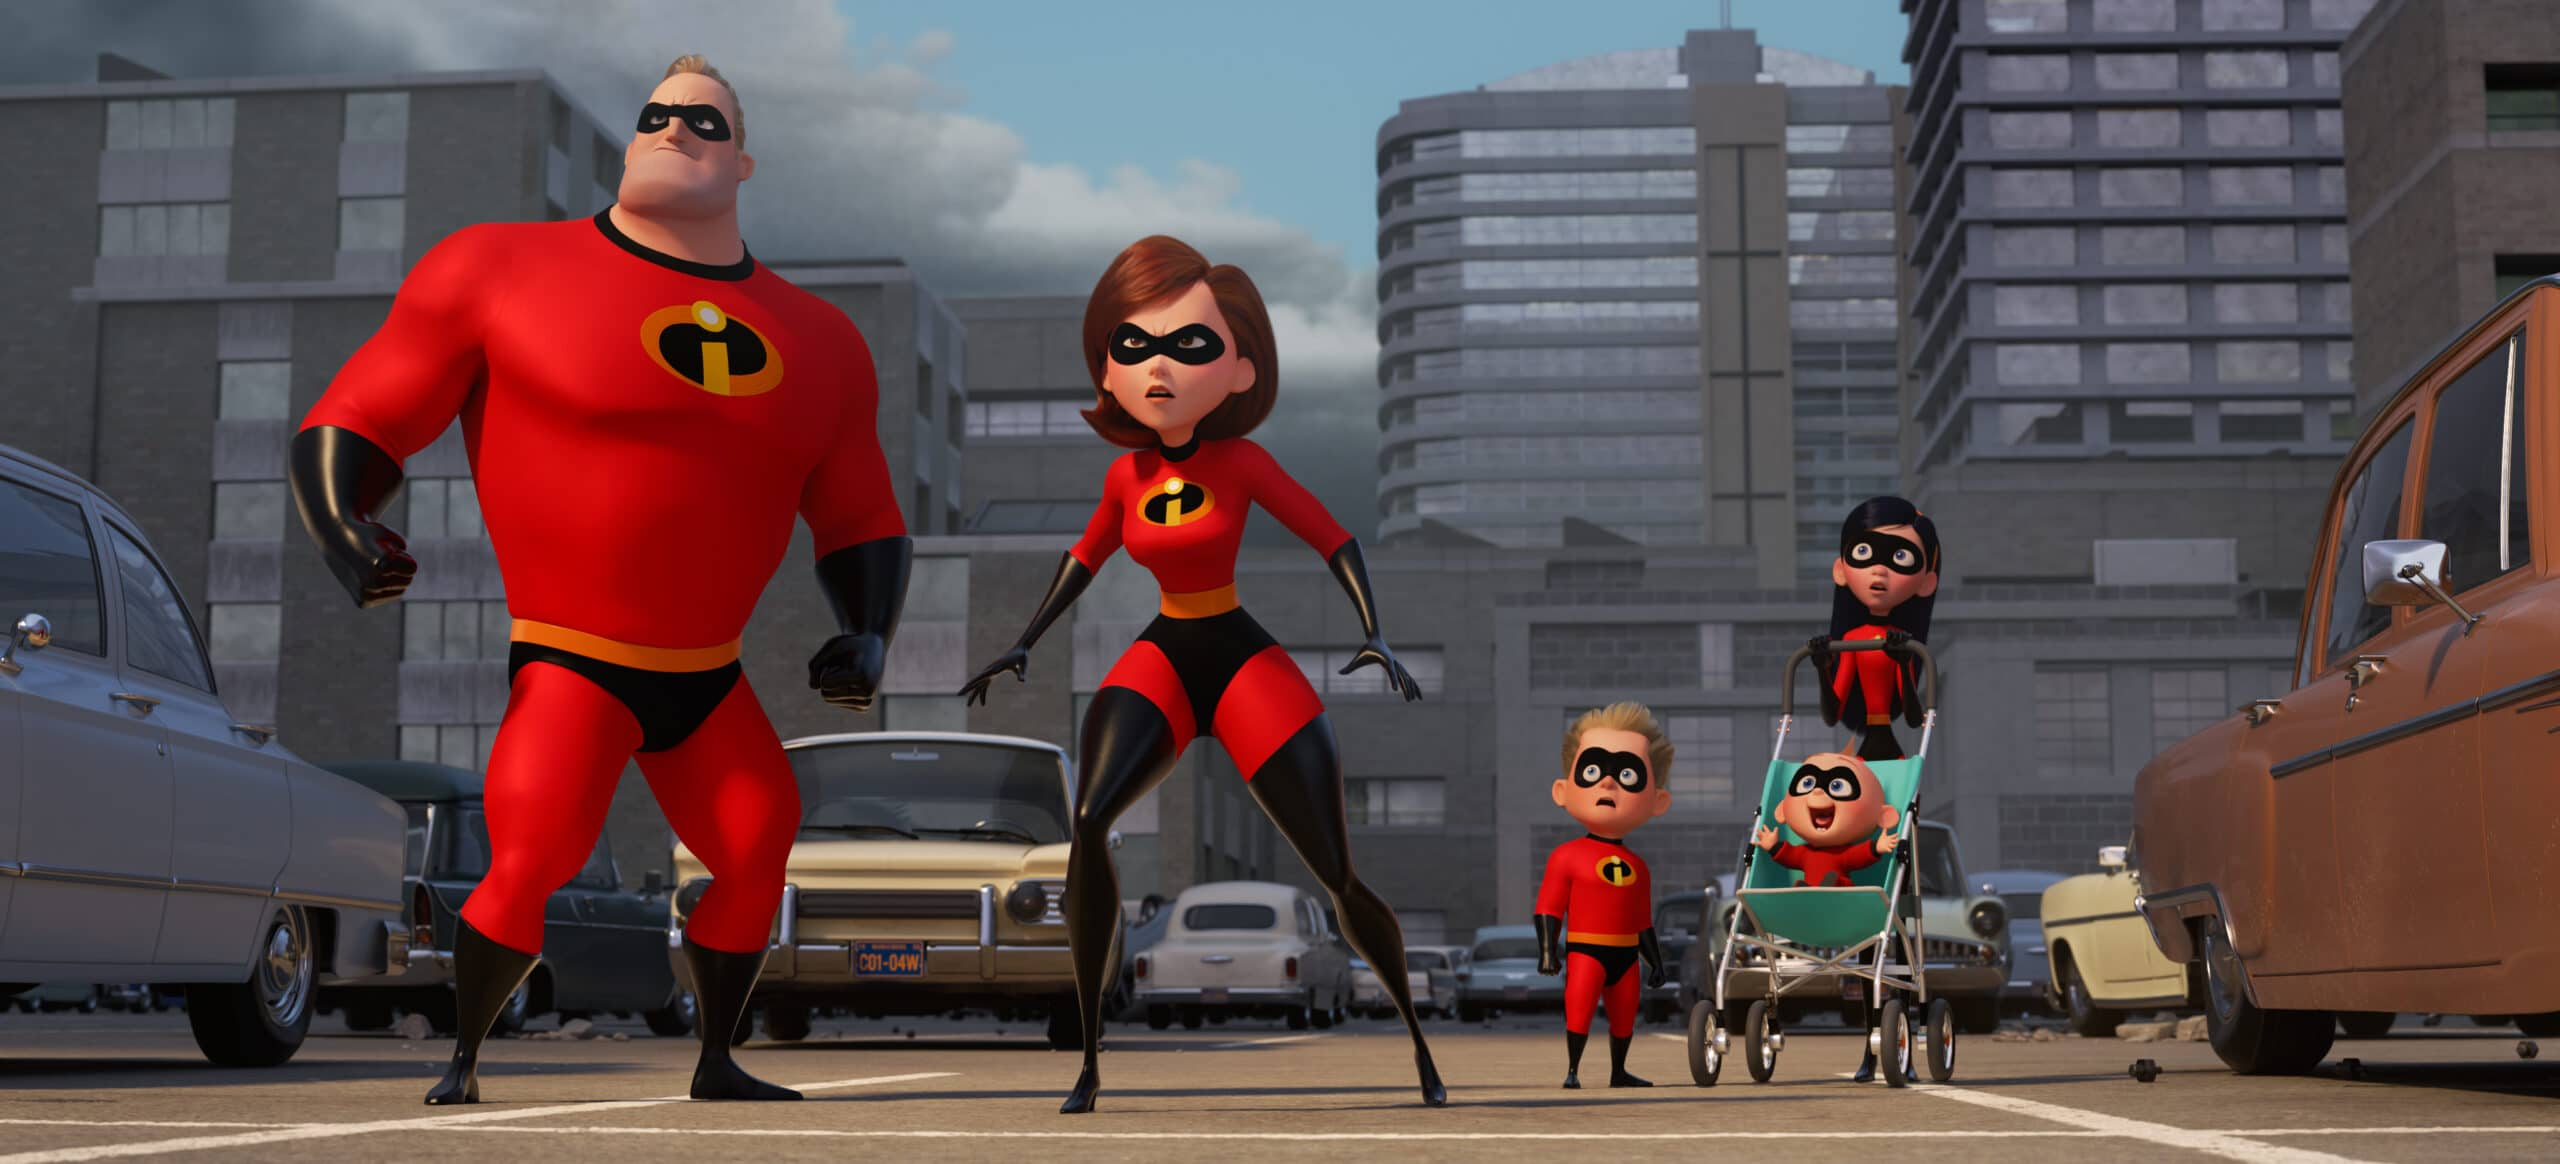 Incredibles 2 Movie Review | Family Friendly? What You Need To Know